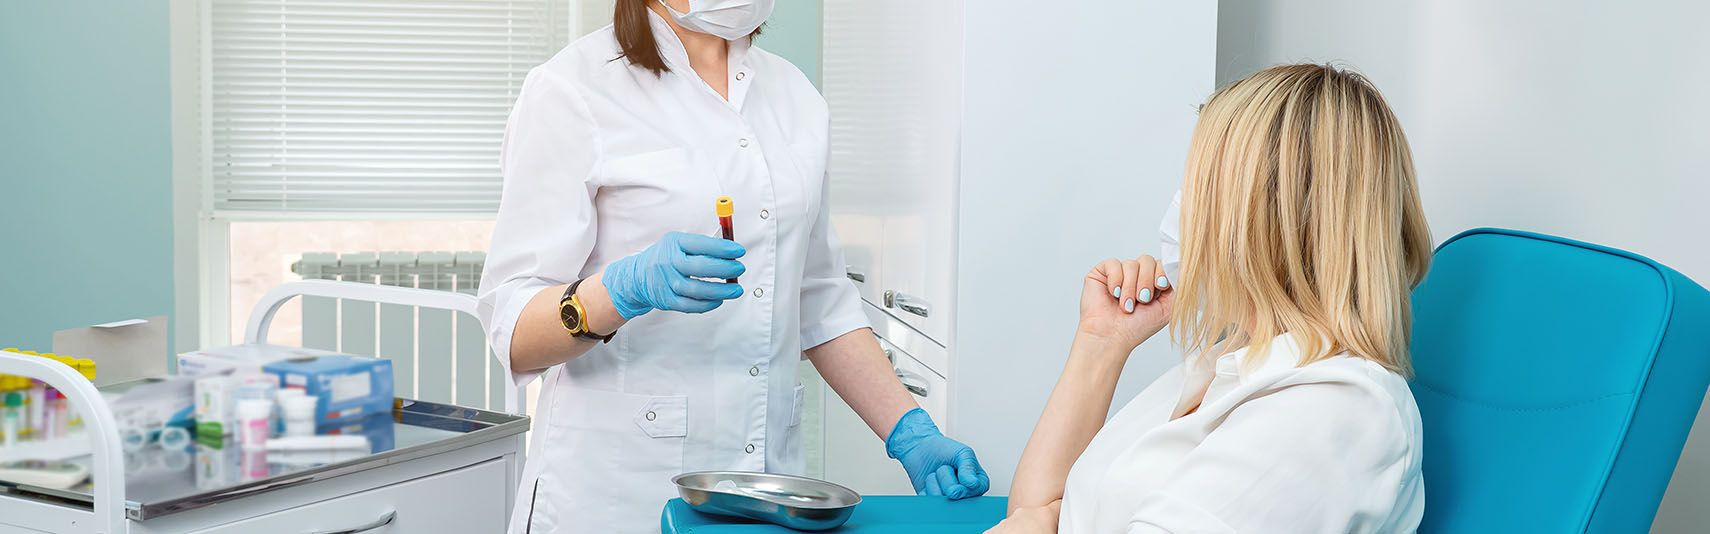 PCOS Testing - Blood Test - Polycystic Ovary Syndrome Testing - Pinnacle Nutrition Consultants 9.2.21